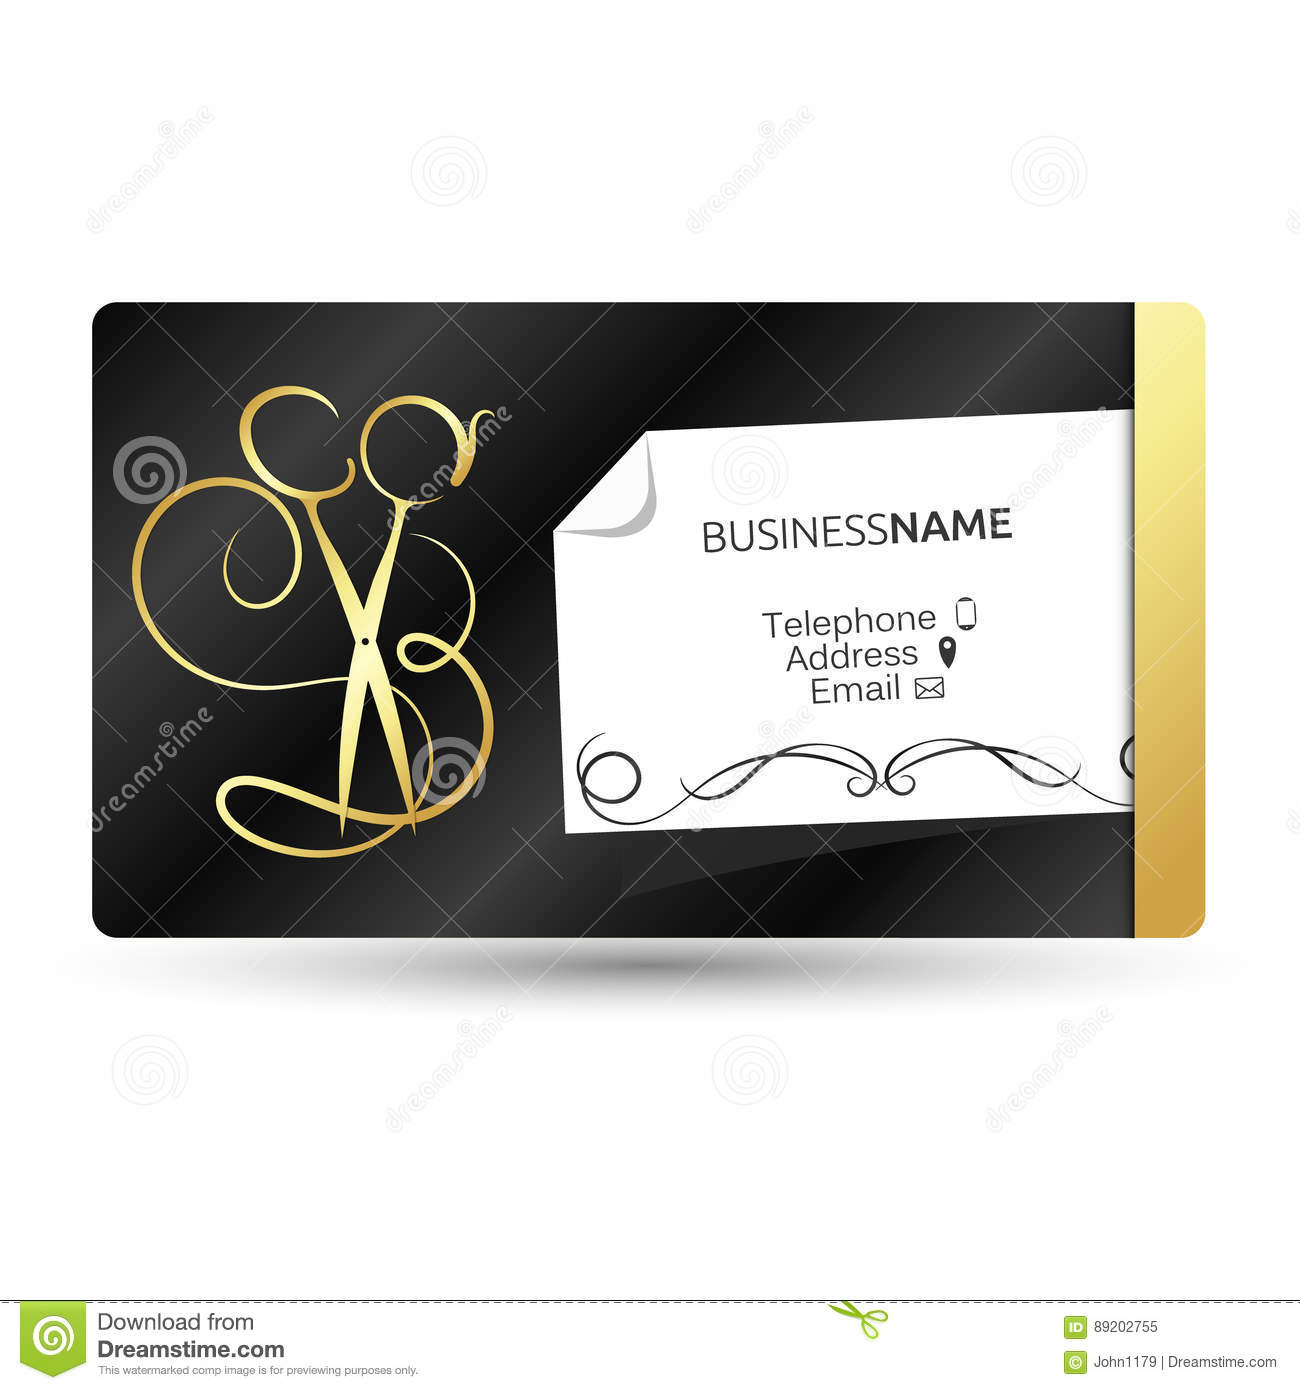 Business card for beauty salon and hairdresser stock vector business card for beauty salon and hairdresser business model colourmoves